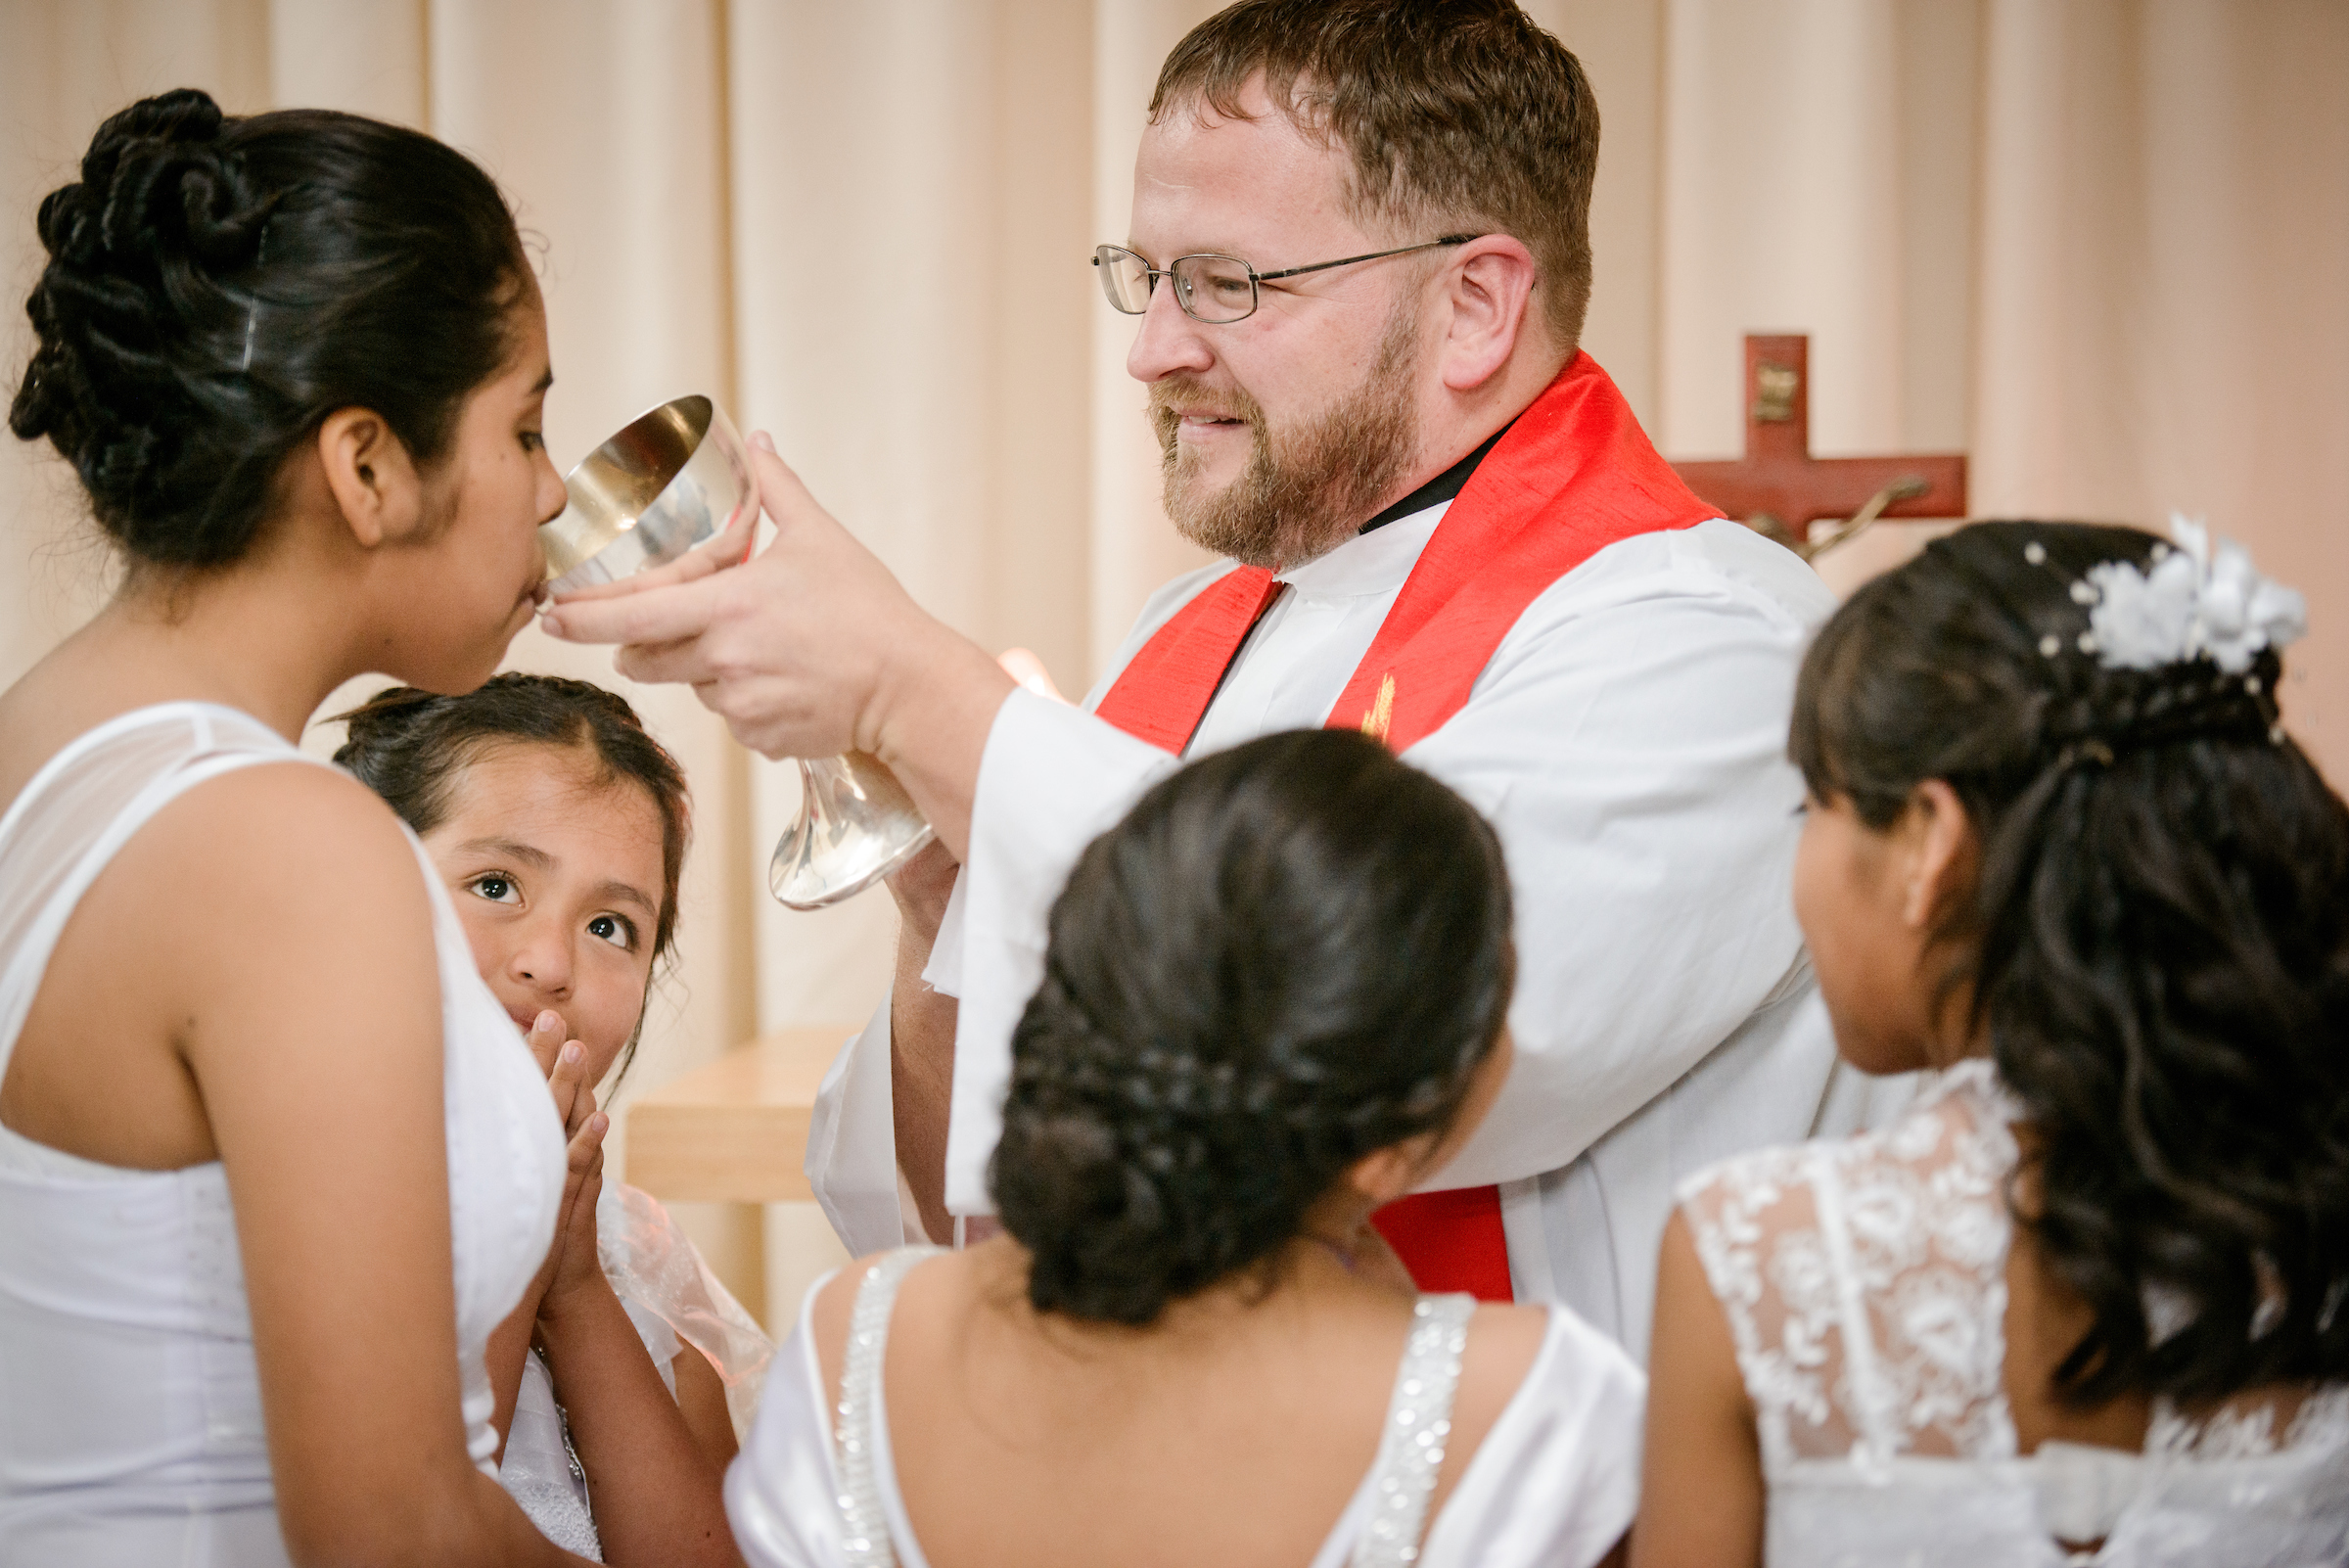 The Rev. Eddie Hosch, LCMS career missionary to Peru, distributes the Sacrament for the first time to new confirmand Naomi at Castillo Fuerte on Saturday, Nov. 4, 2017, in the La Victoria district of Lima, Peru. LCMS Communications/Erik M. Lunsford